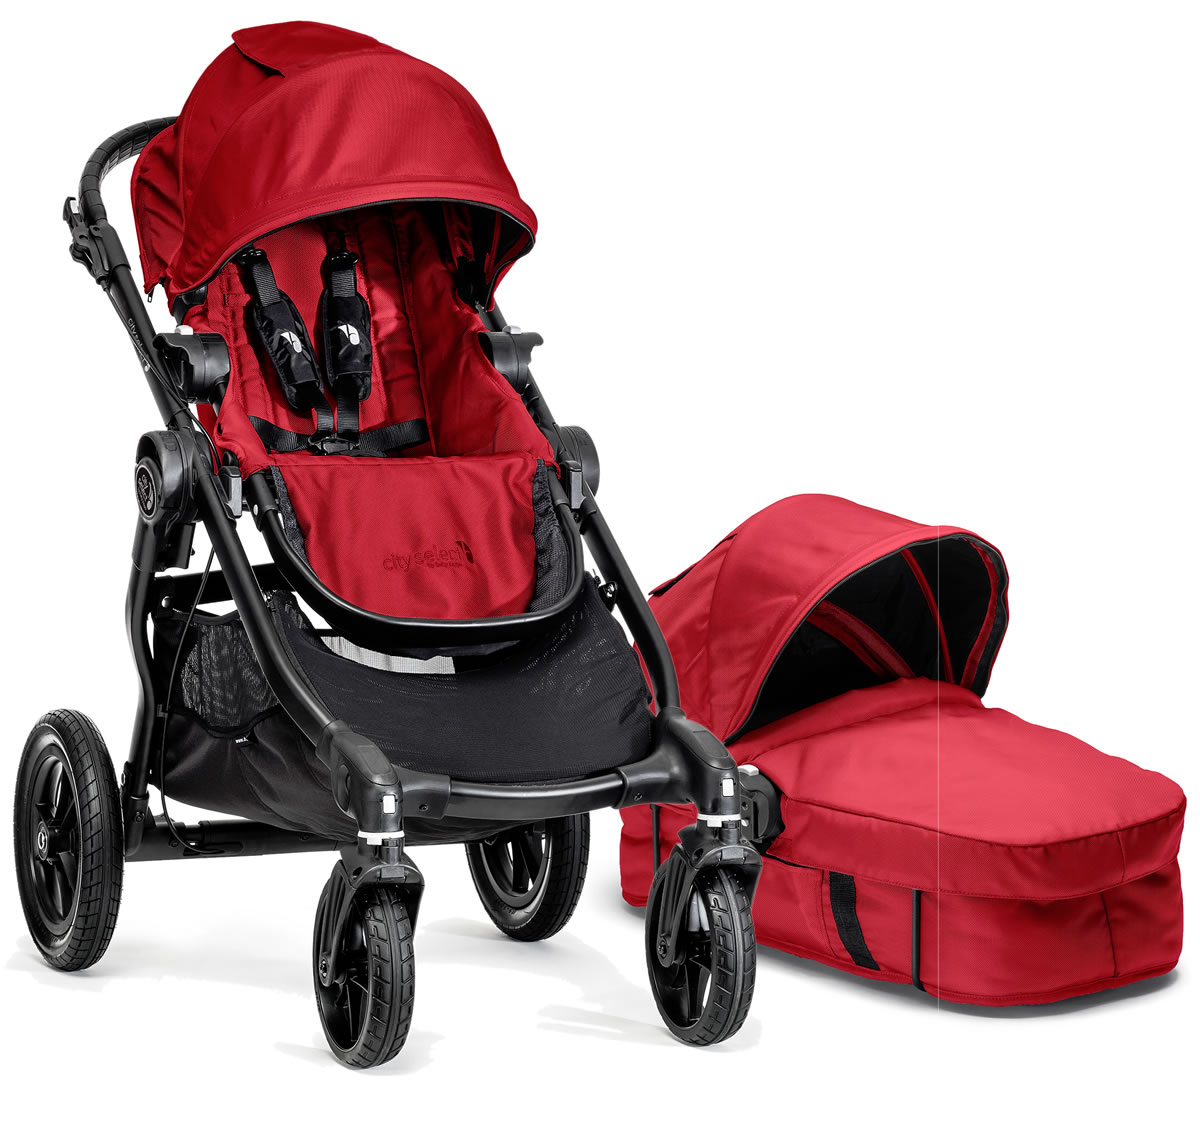 Baby Jogger City Select Stroller Bassinet Red